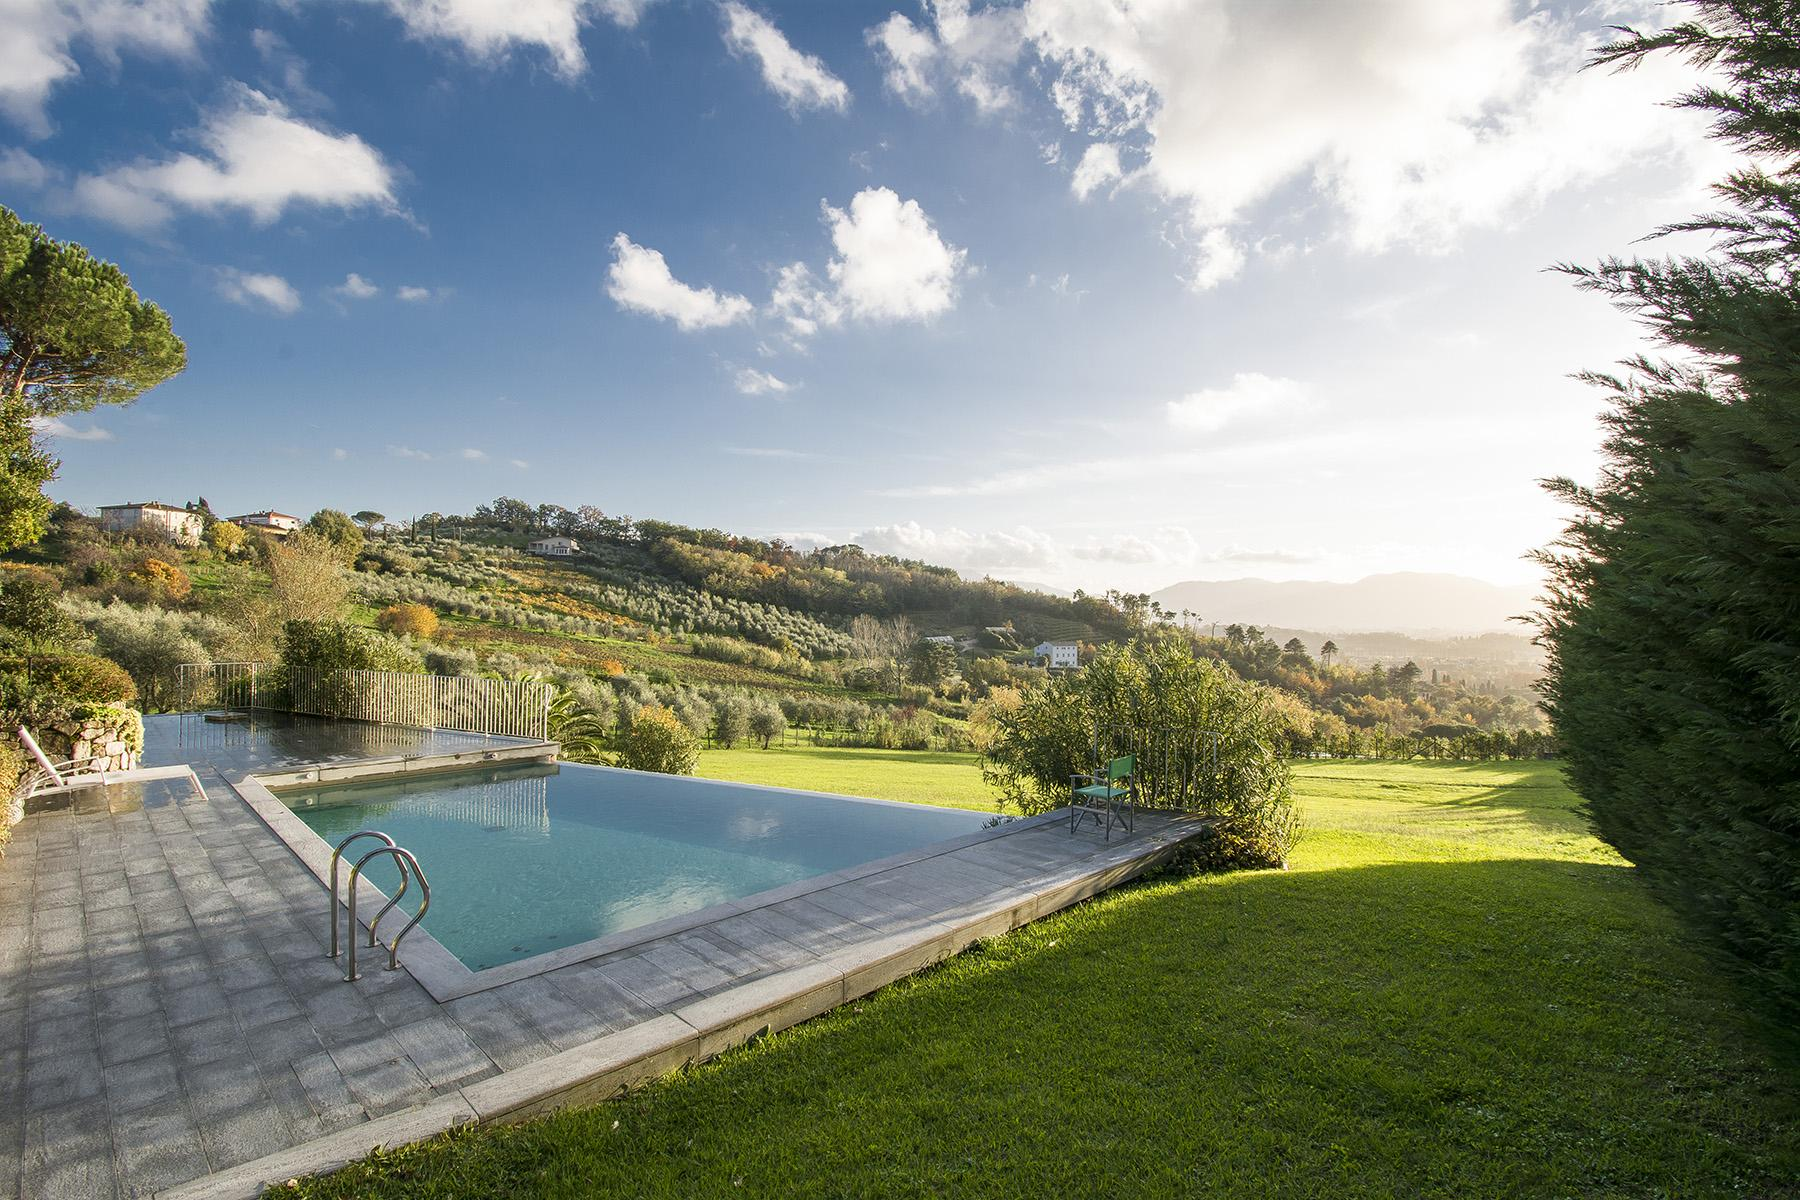 Beautiful villa with infinity pool and view over the hills around Lucca - 1